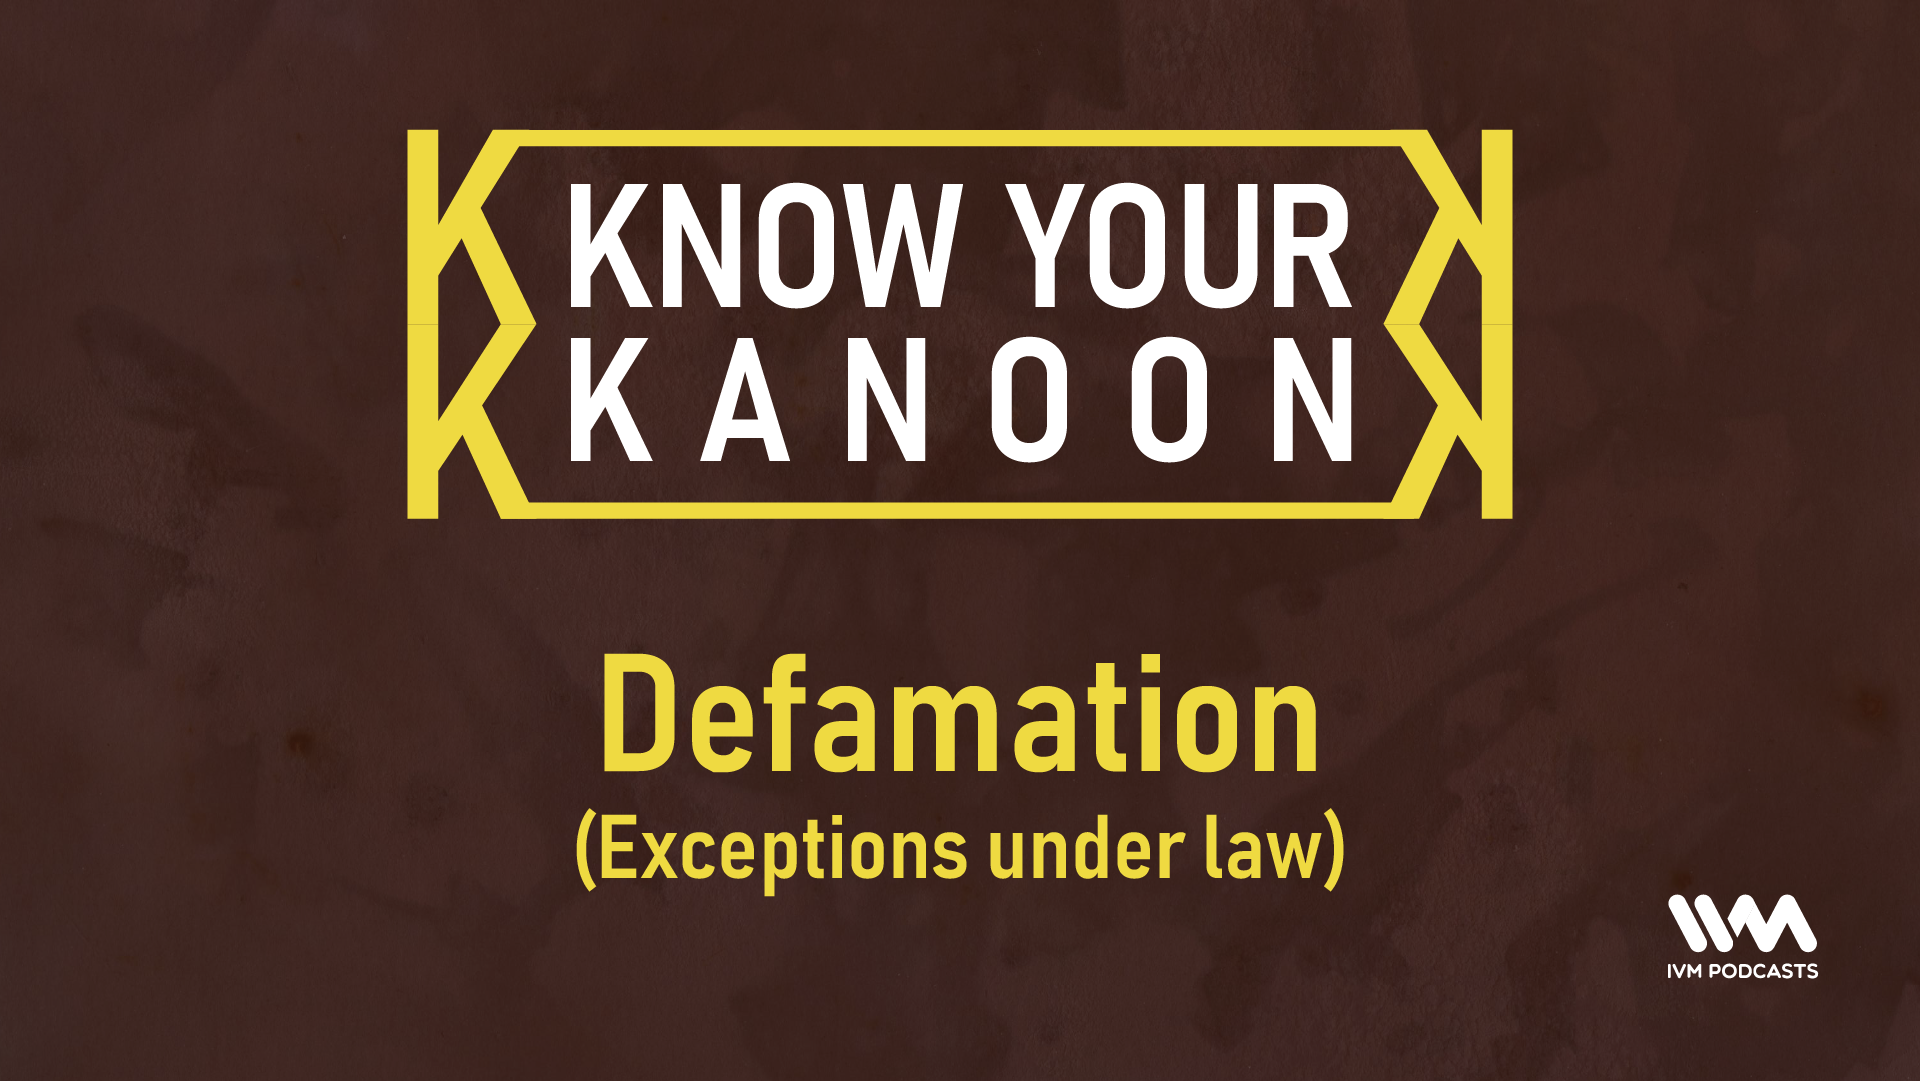 KnowYourKanoonEpisode34.png